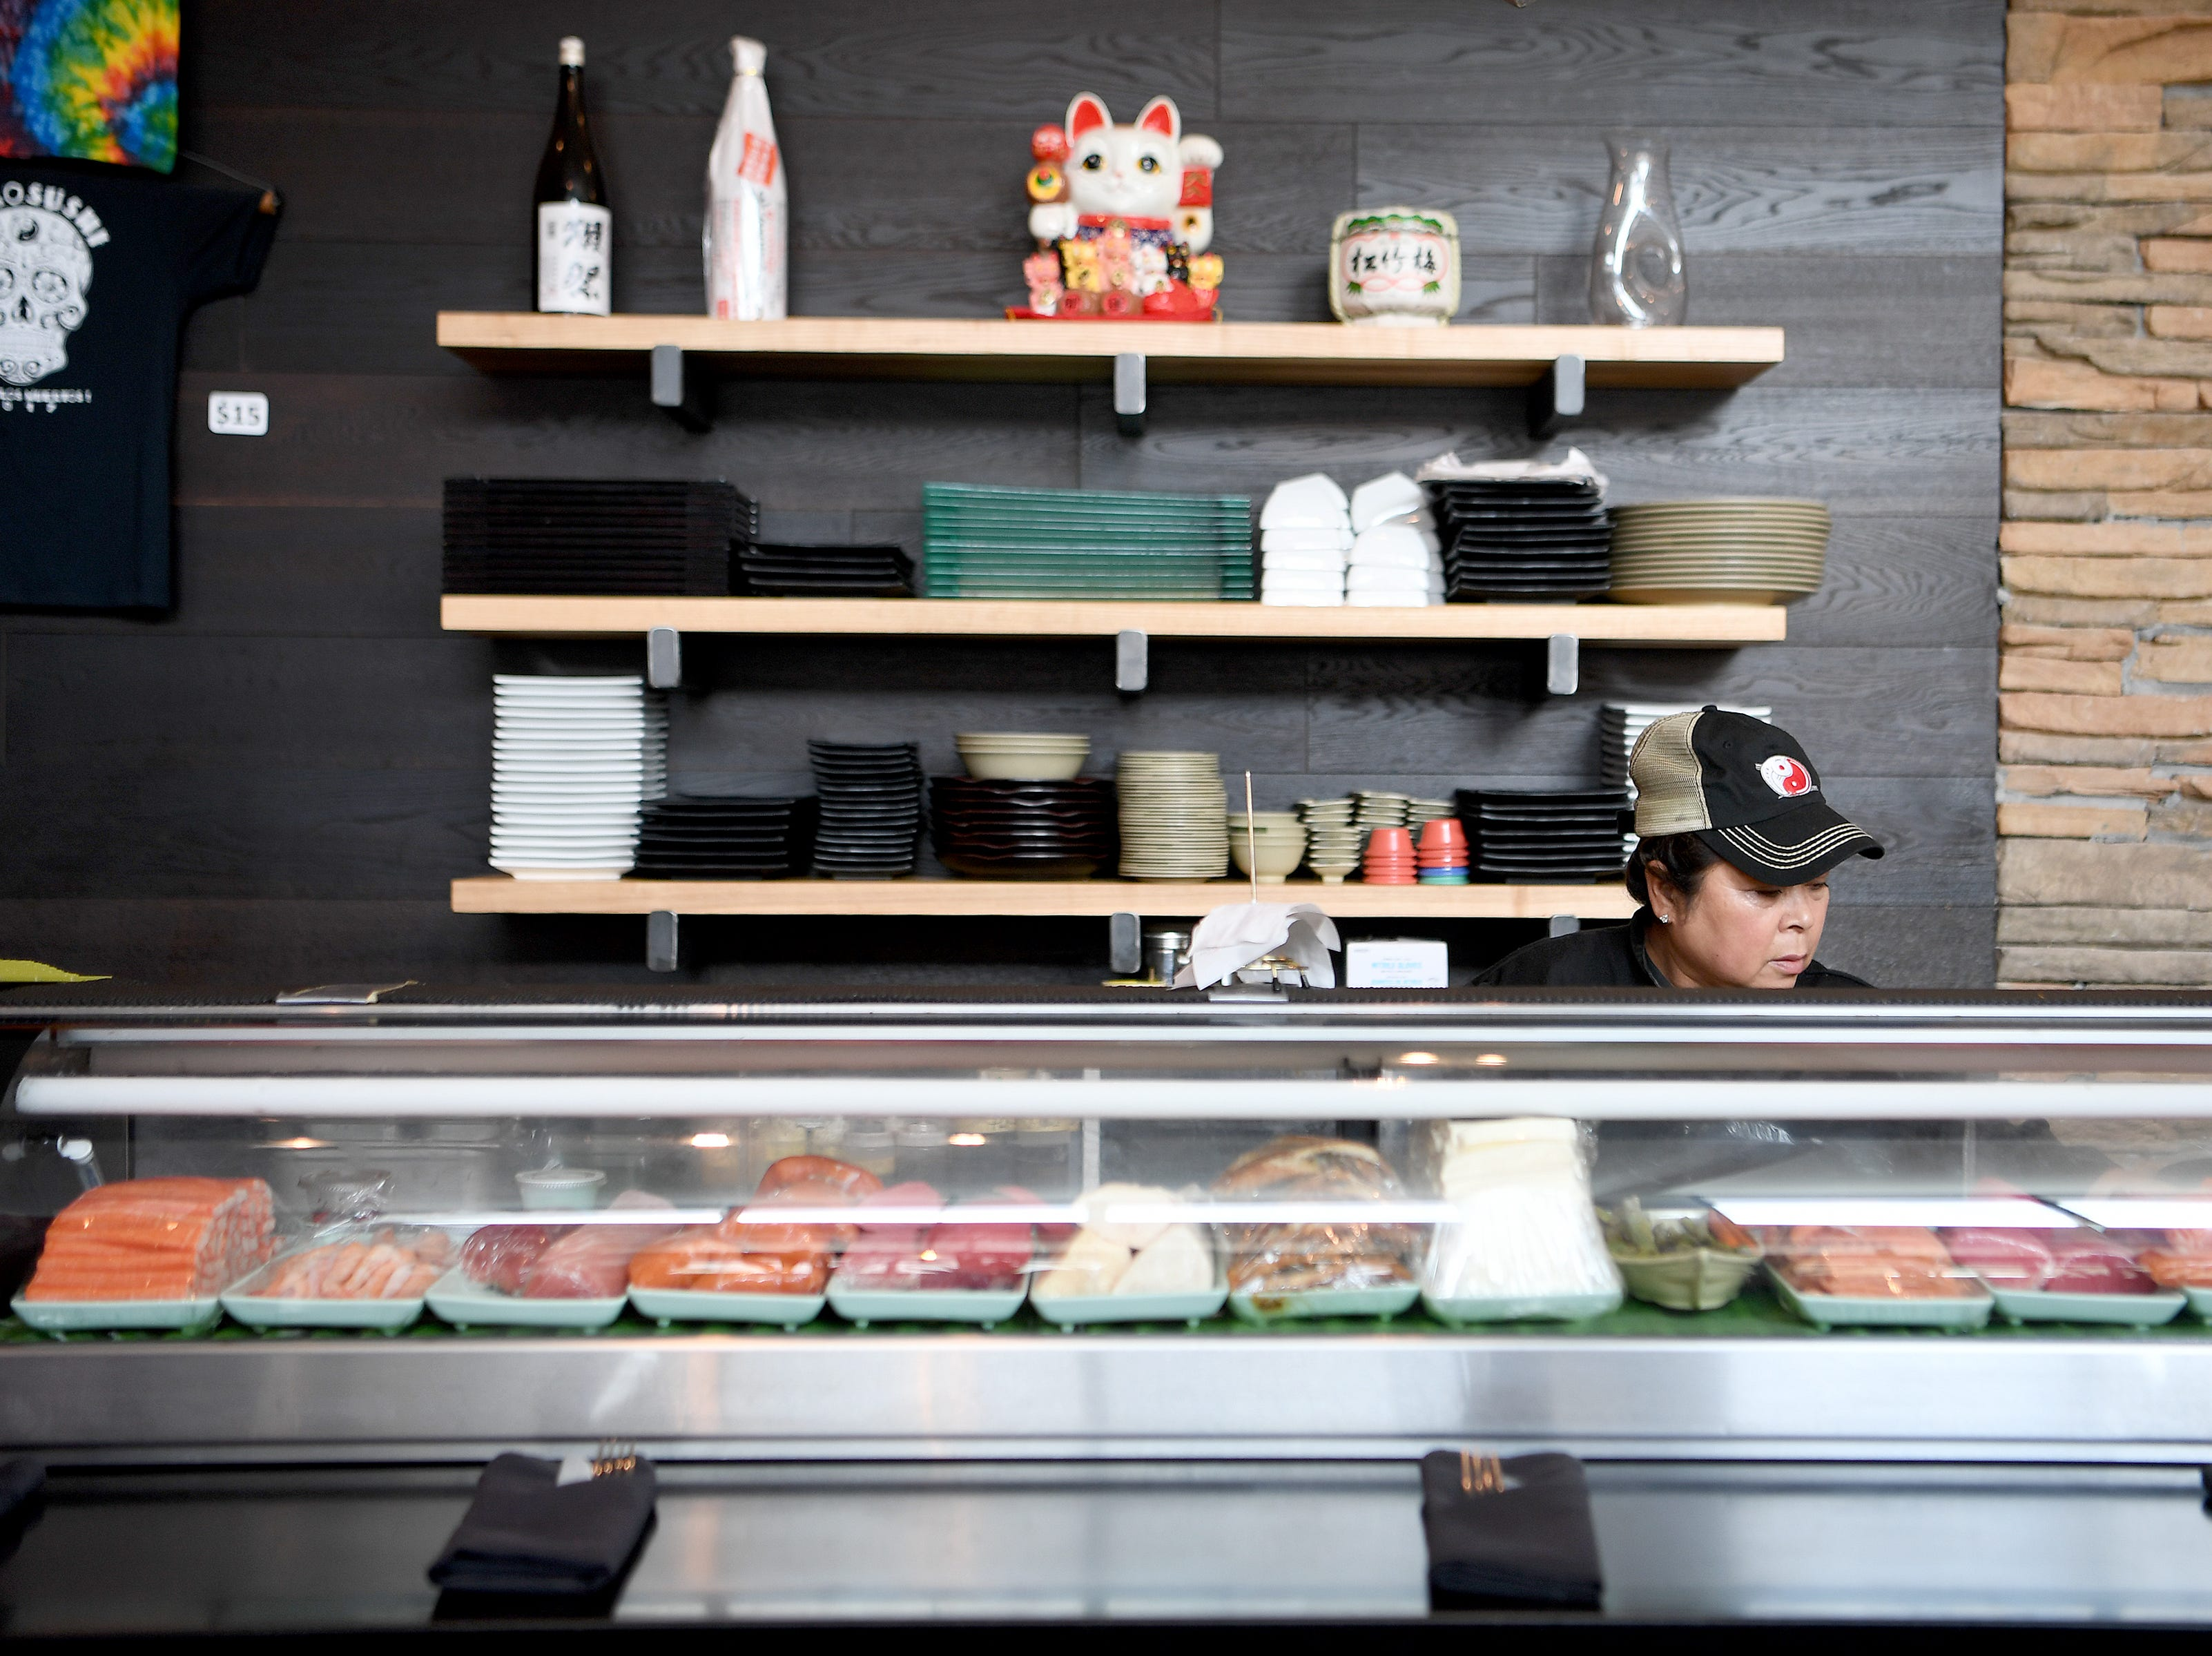 Takosushi, with the cuisine description of Far East Southwest, is now open on Asheville's South Slope.